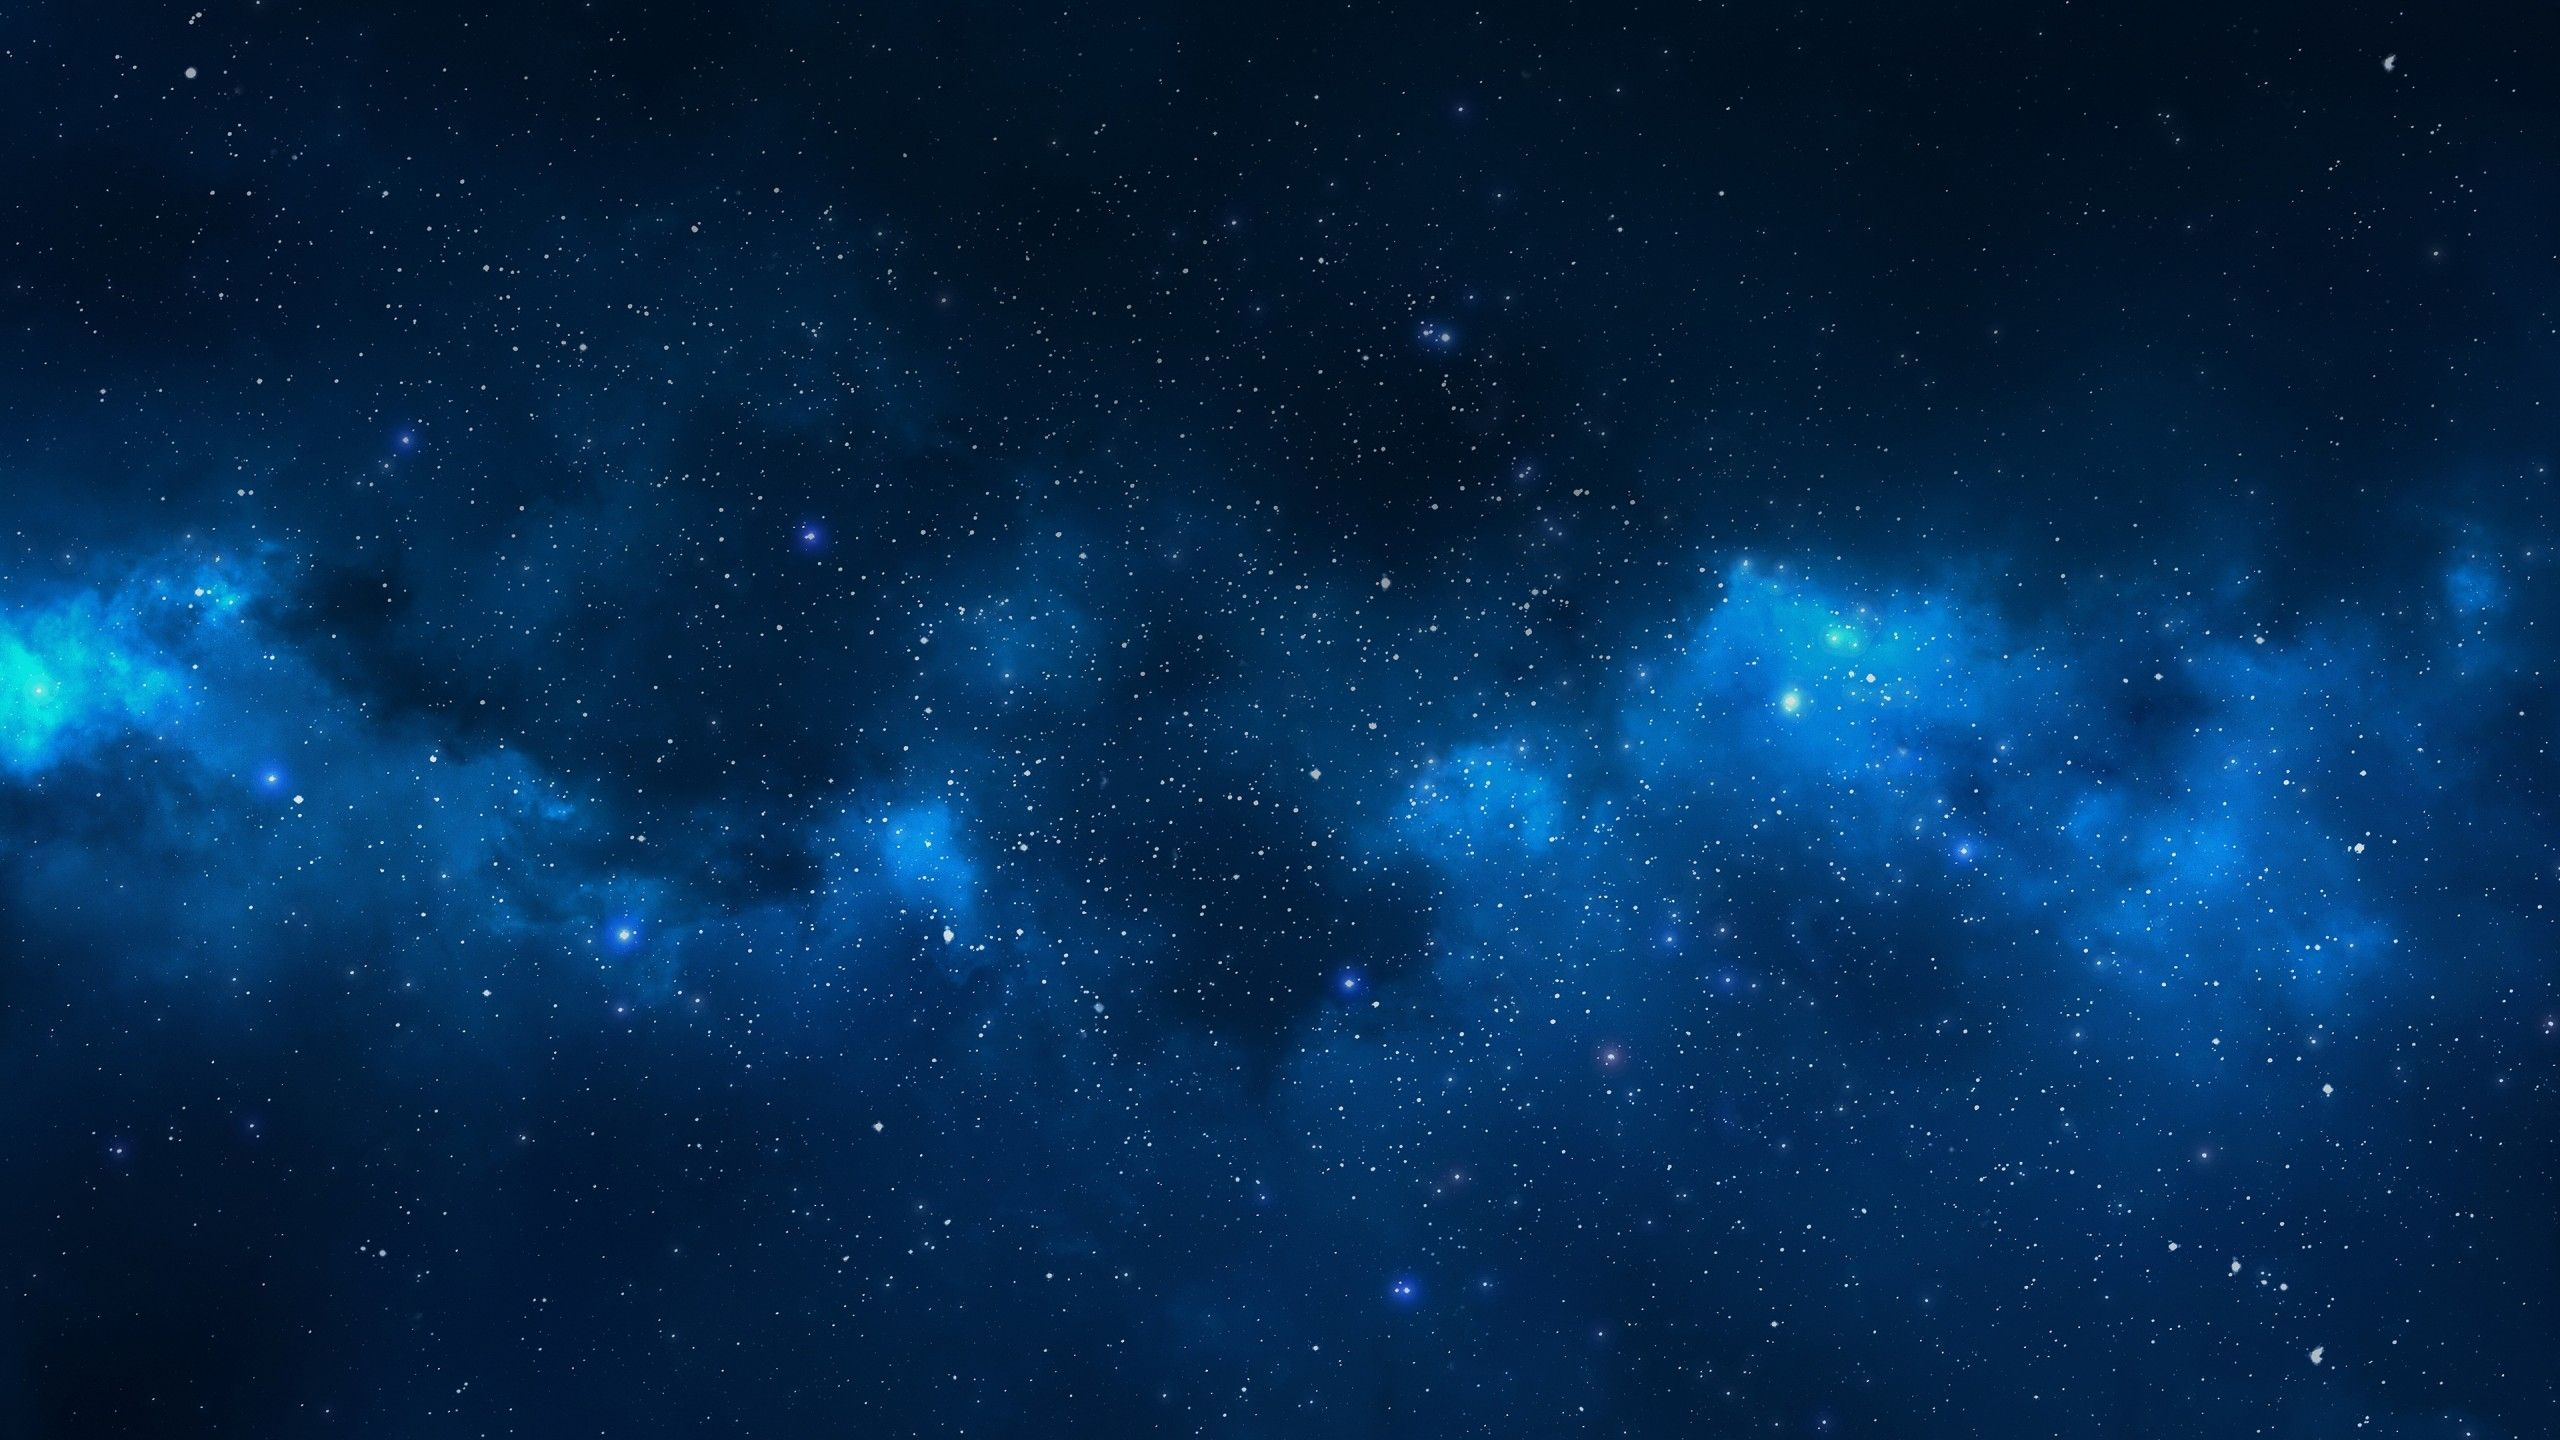 10 Latest 4k Wallpaper Galaxy Full Hd 1920 1080 For Pc Background Galaxy Wallpaper Blue Galaxy Wallpaper Wallpaper Space